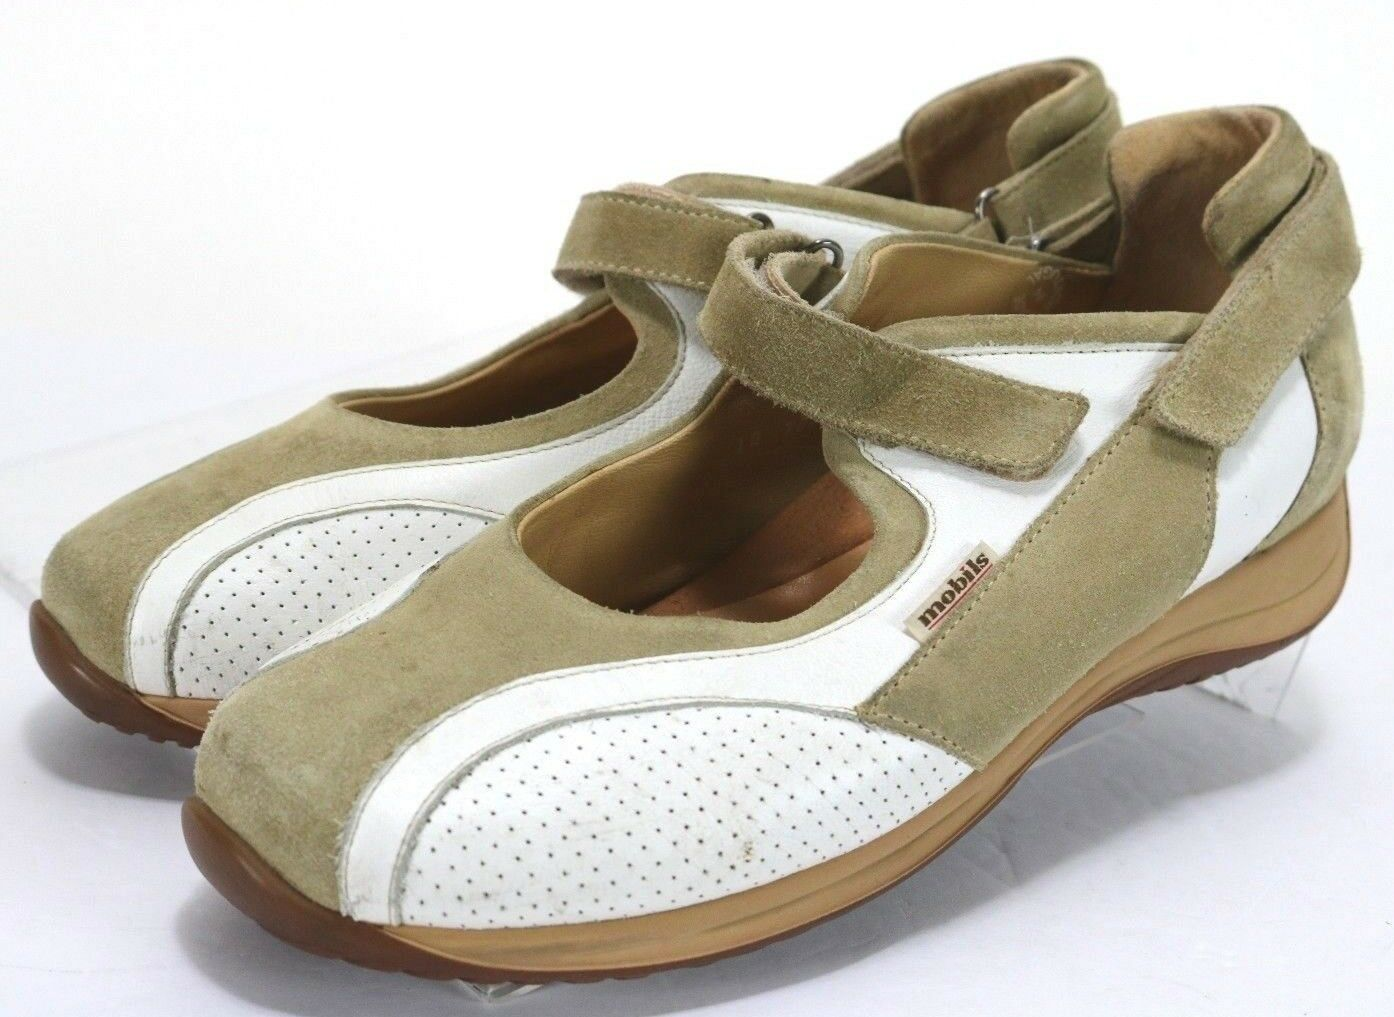 Mephisto Mobils  180 Women's Mary Janes shoes Size 7.5 Leather Beige White